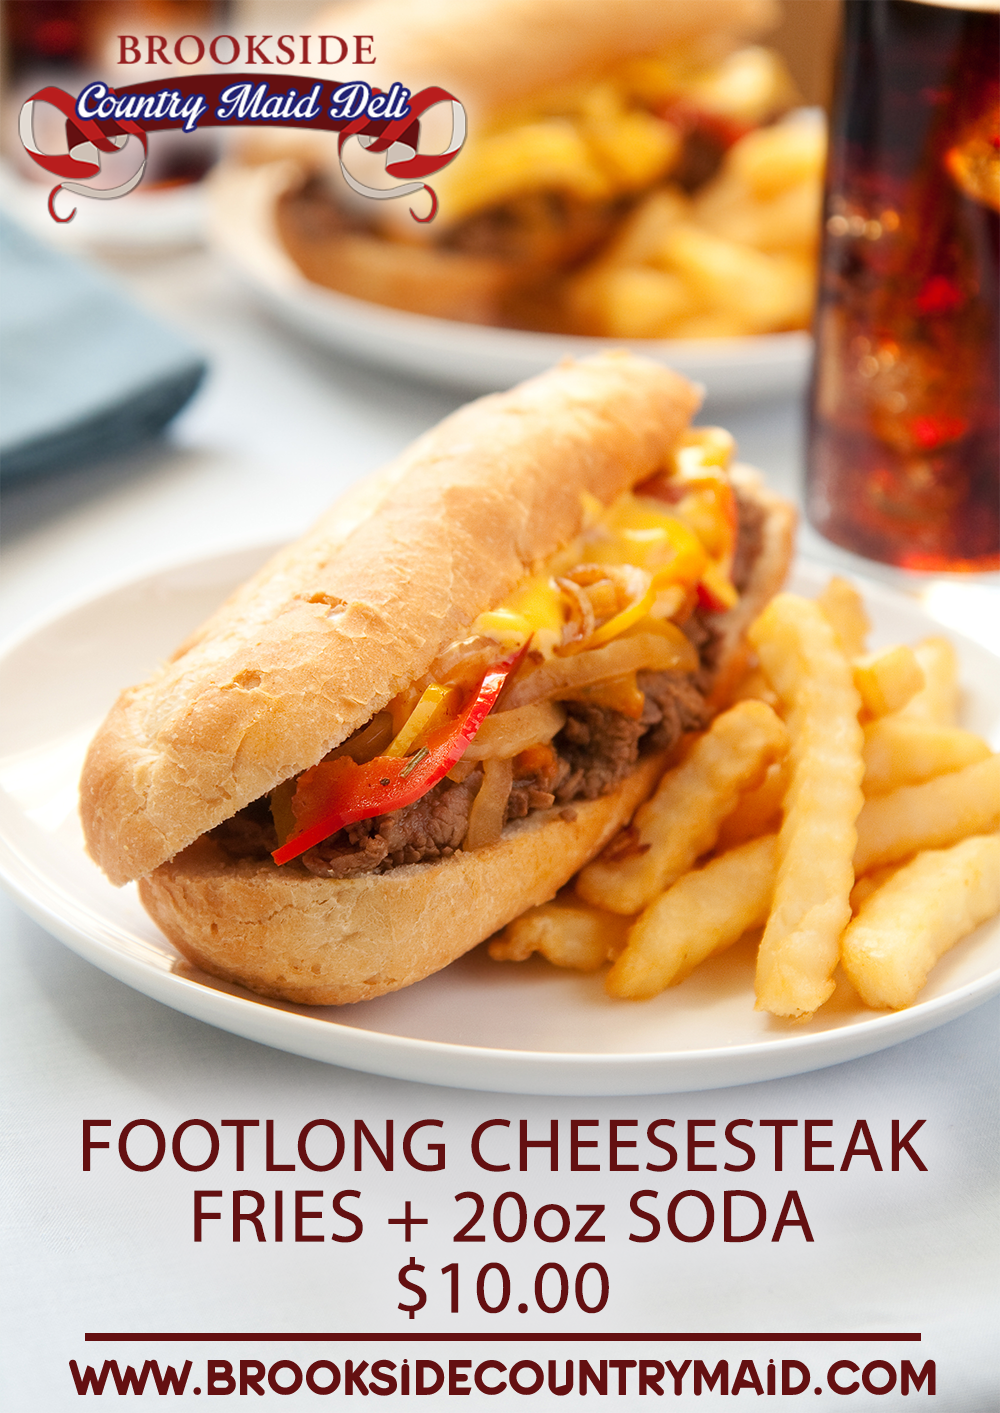 Footlong cheesesteak, fries and 20 ounce soda $10.00